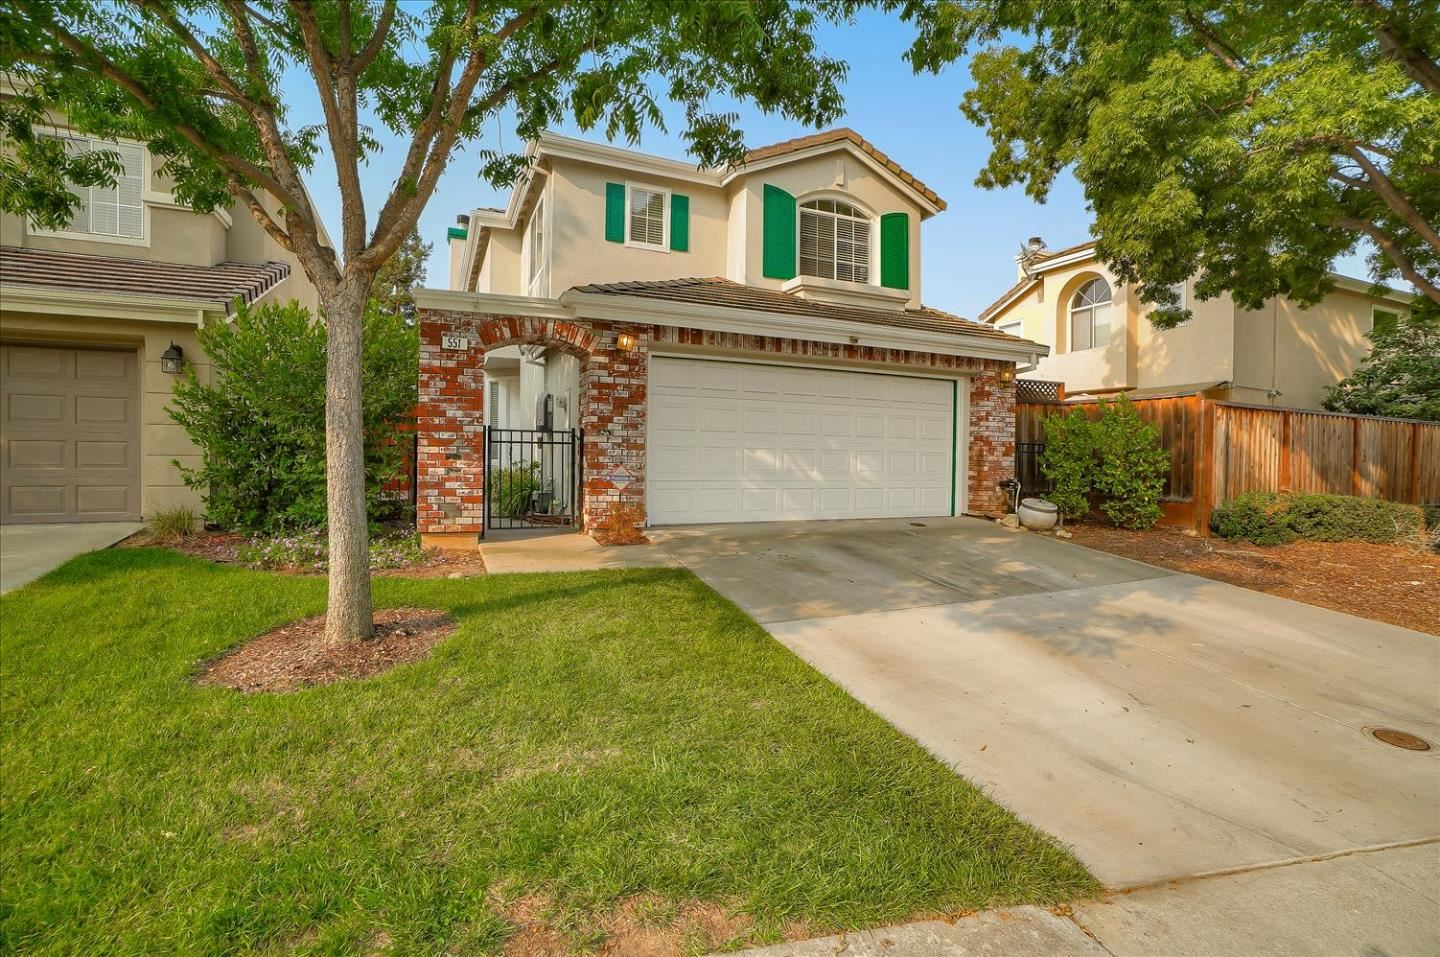 Photo for 551 Birdsong ST, GILROY, CA 95020 (MLS # ML81811033)